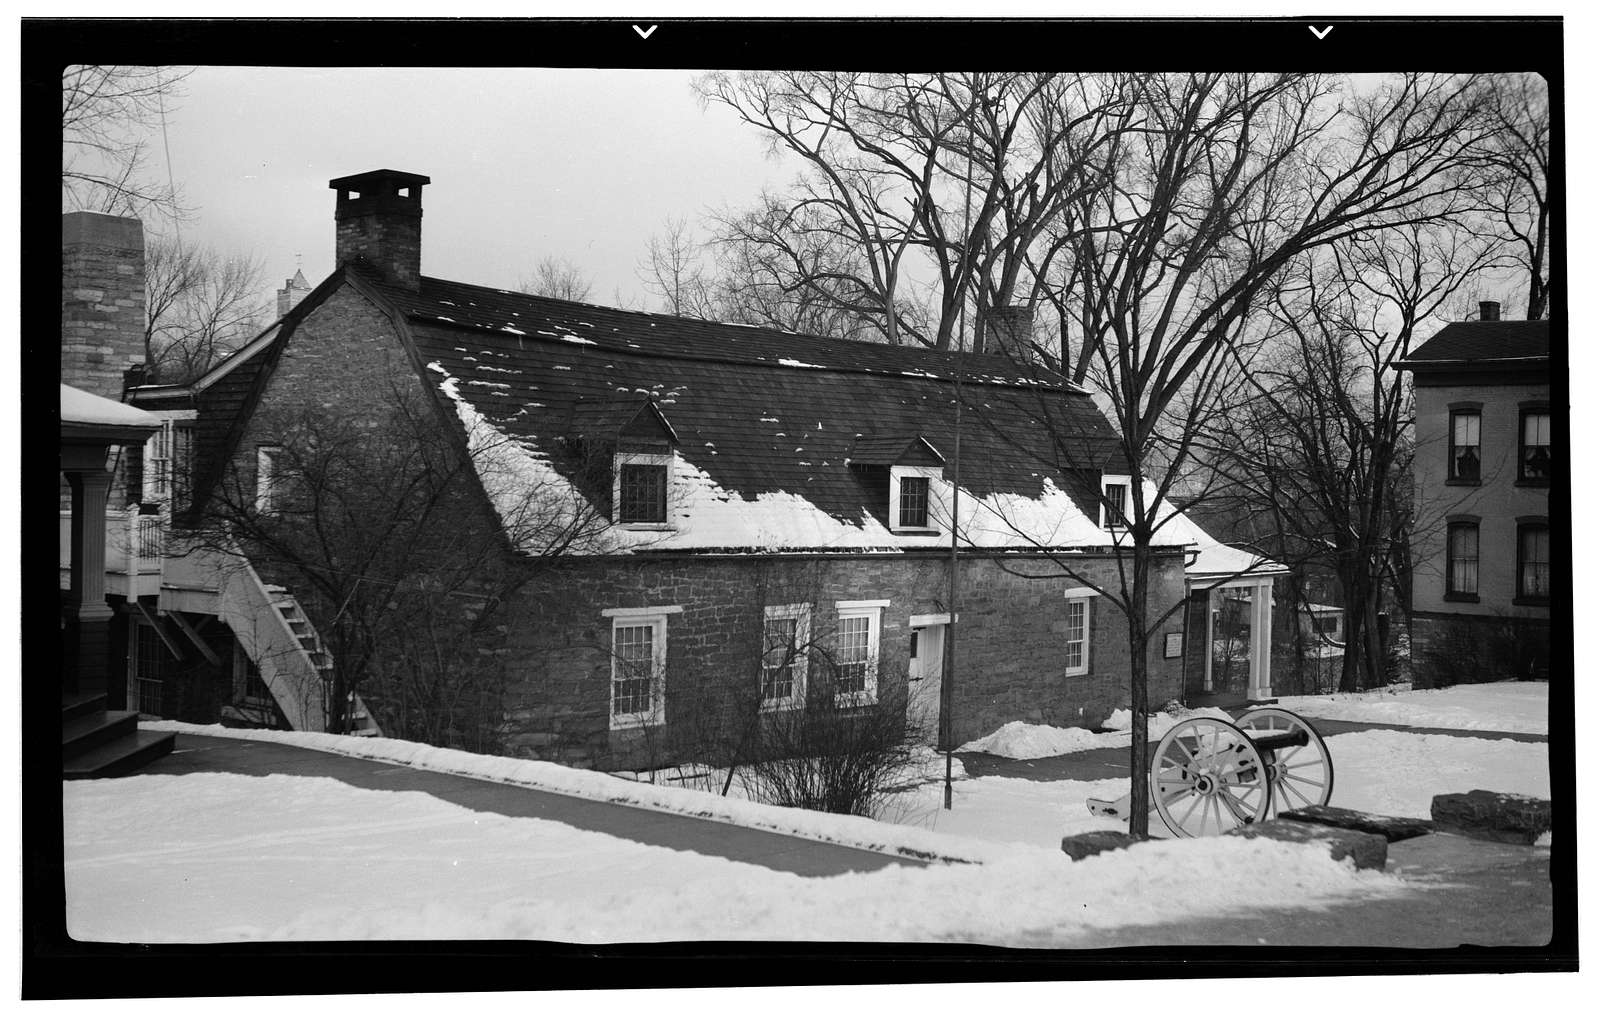 Fort Rensselaer, Canajoharie, Montgomery County, NY